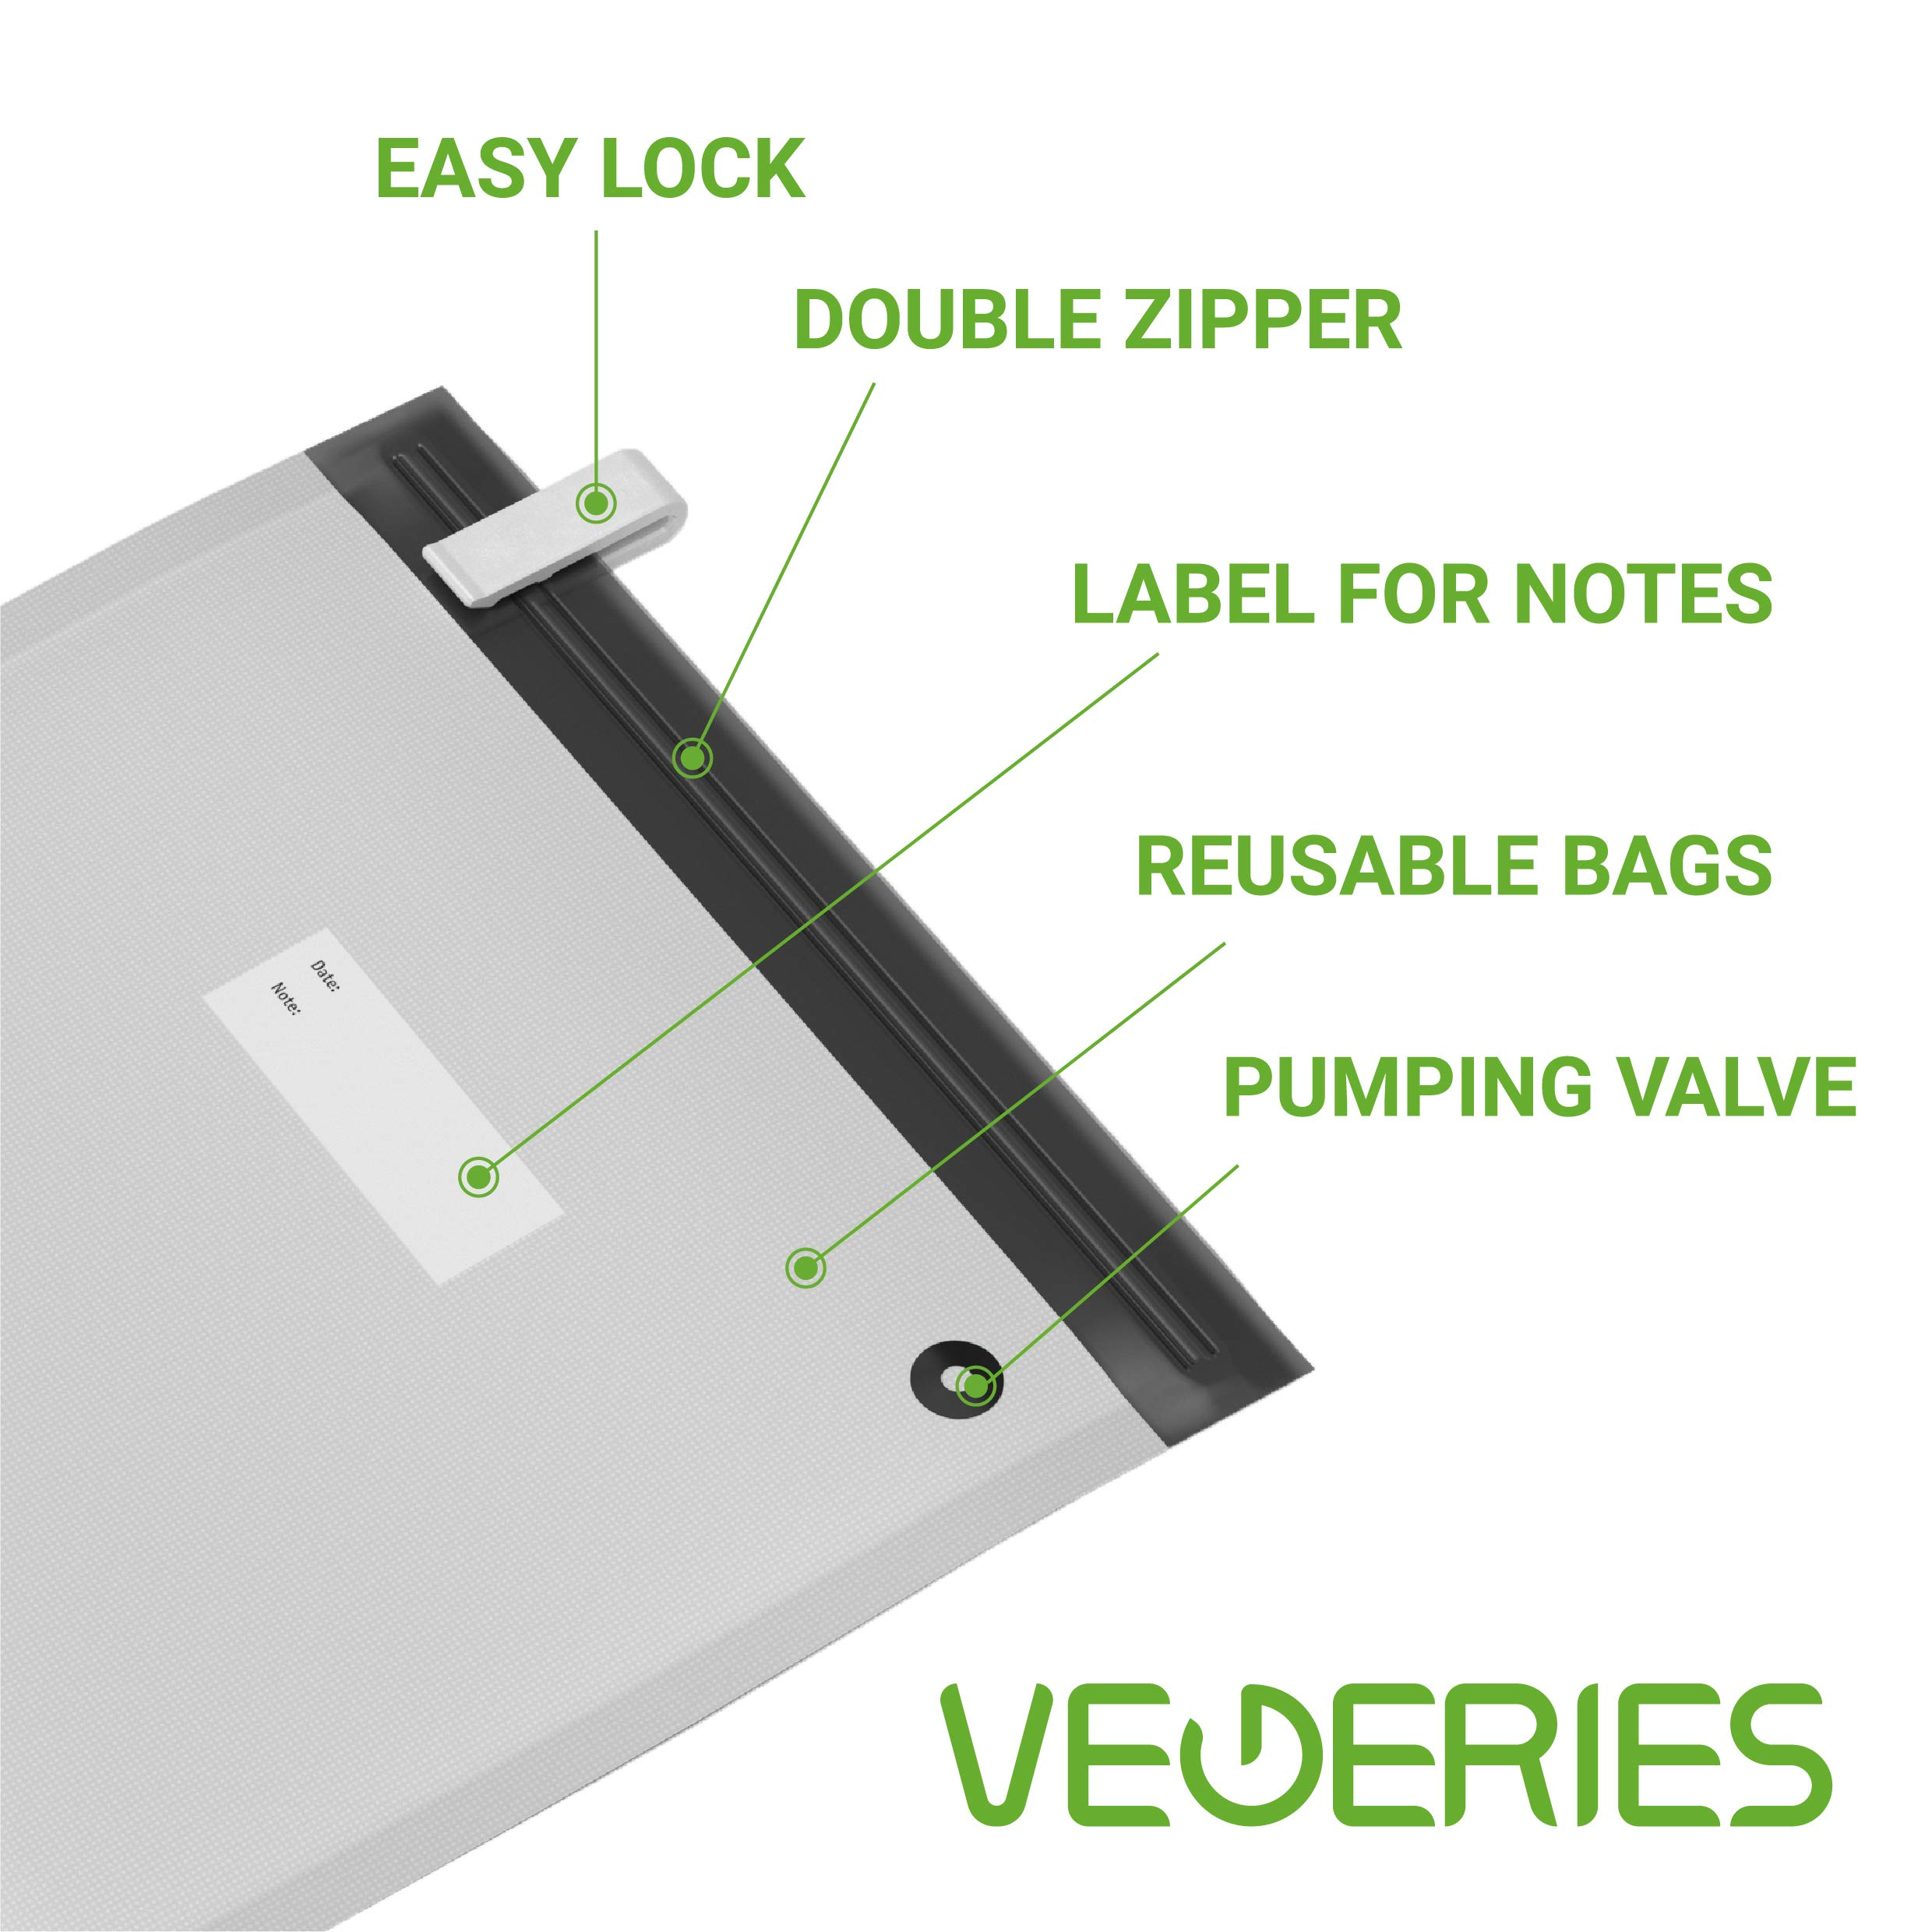 Sous Vide Bags 30 Reusable Vacuum Food Storage Bags for Anova and Joule Cookers - 3 sizes Sous Vide Bag Kit with Pump - 4 Sealing Clips - 4 Sous Vide Bag Clips for Food Storage and Sous Vide Cooking by VEGERIES (Image #6)